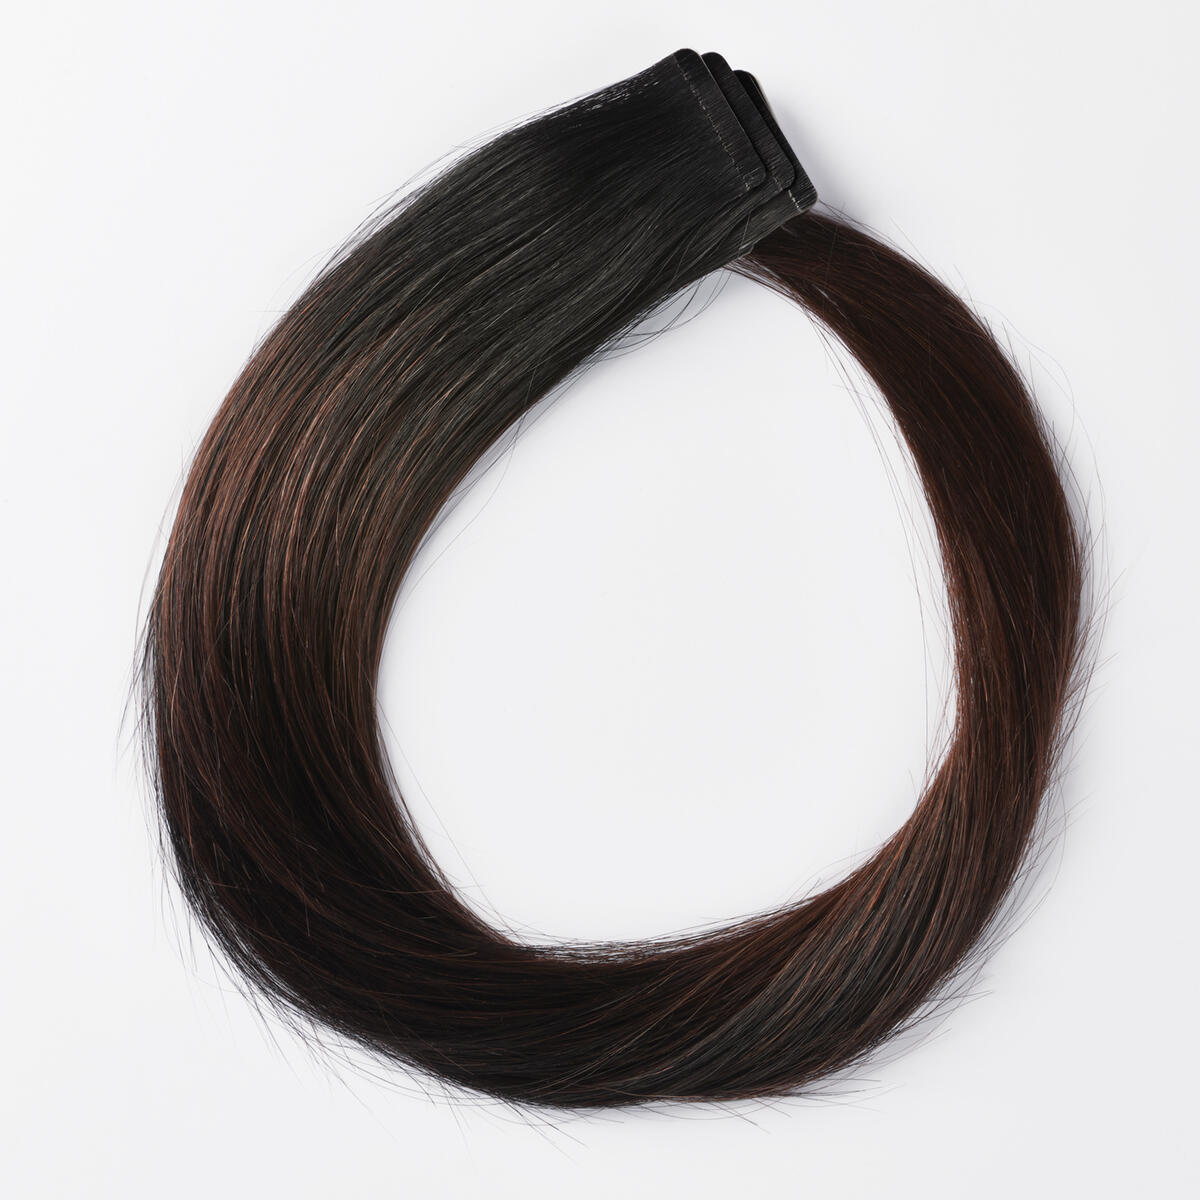 Sleek Tape Extension B1.0/6.12 Cherry Infused Black Balayage 45 cm